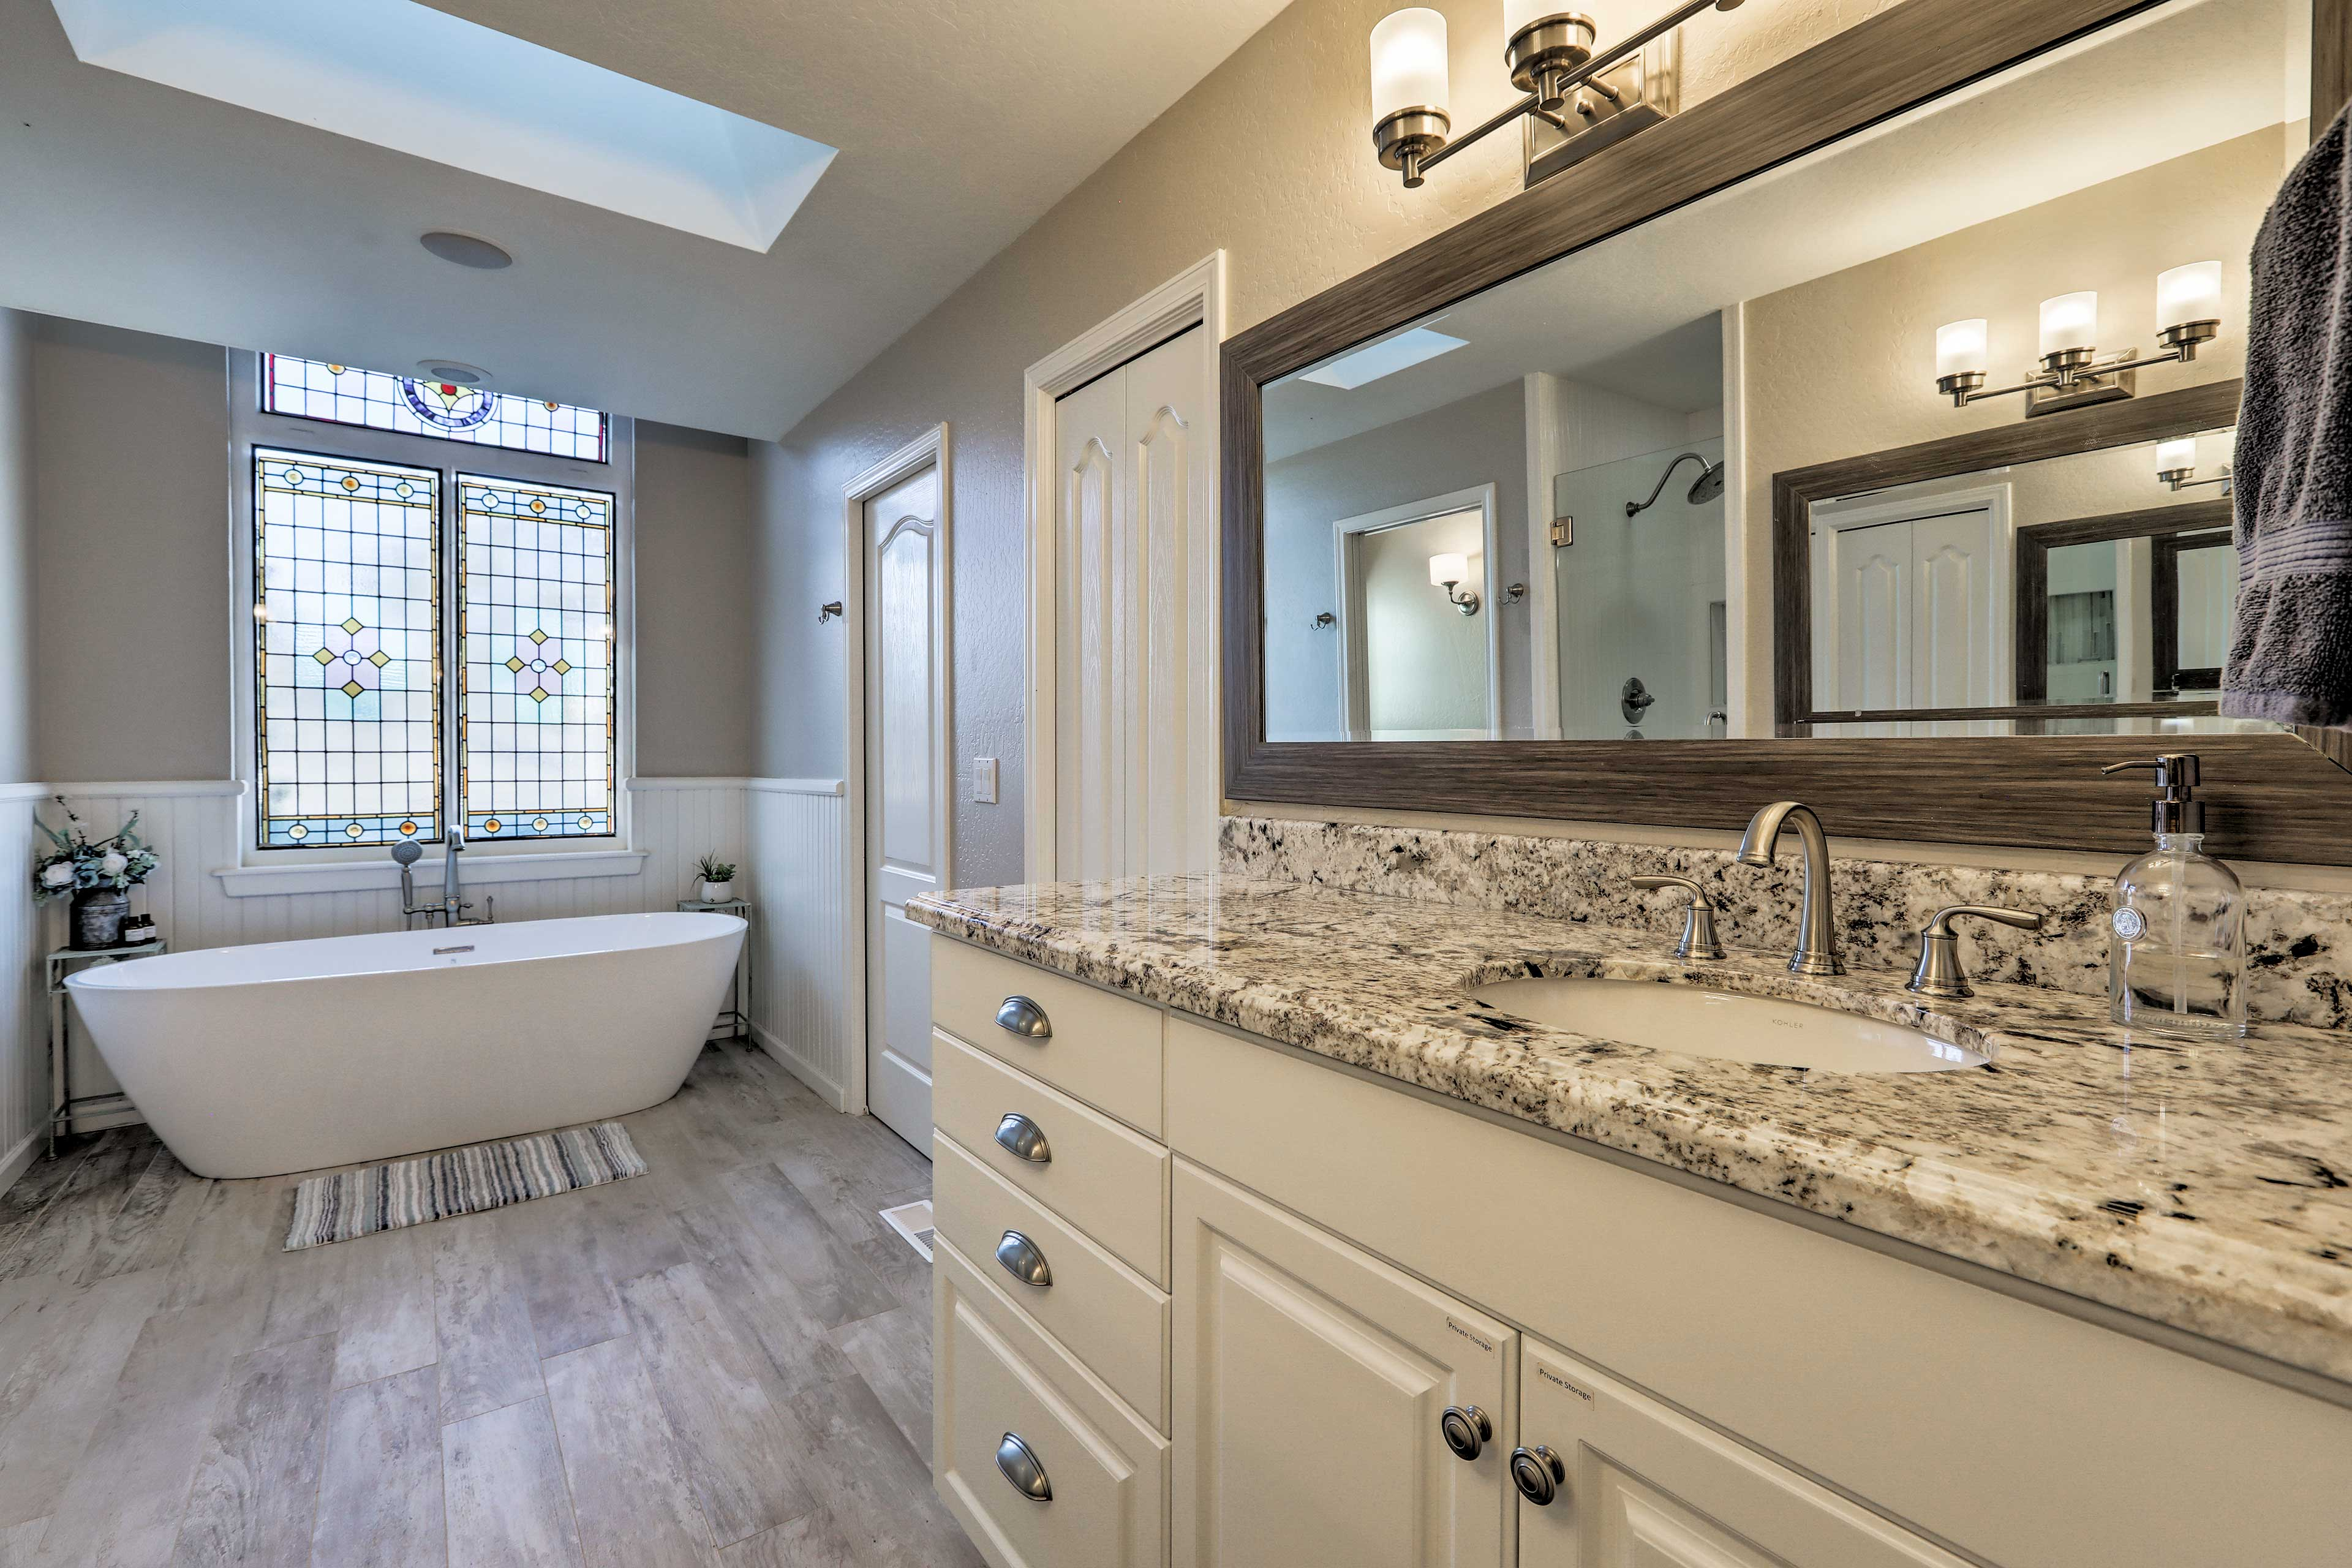 This private en-suite bathroom includes a soaking tub and walk-in shower.